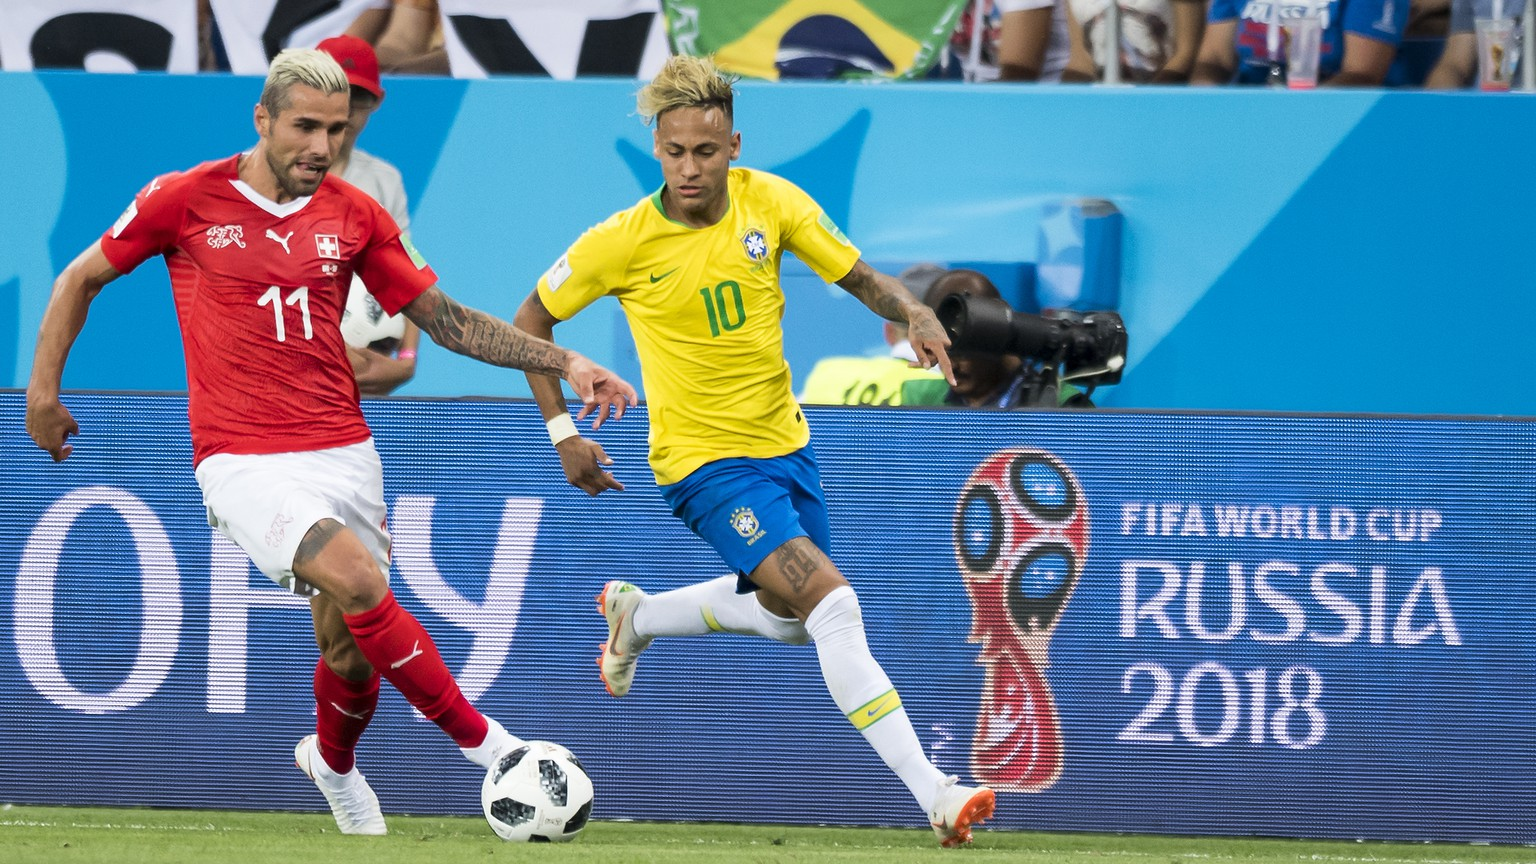 Switzerland's midfielder Valon Behrami, left, fights for the ball against Brazil's forward Neymar, right, during the FIFA soccer World Cup 2018 group E match between Switzerland and Brazil at the Rostov Arena, in Rostov-on-Don, Russia, Sunday, June 17, 2018. (KEYSTONE/Laurent Gillieron)